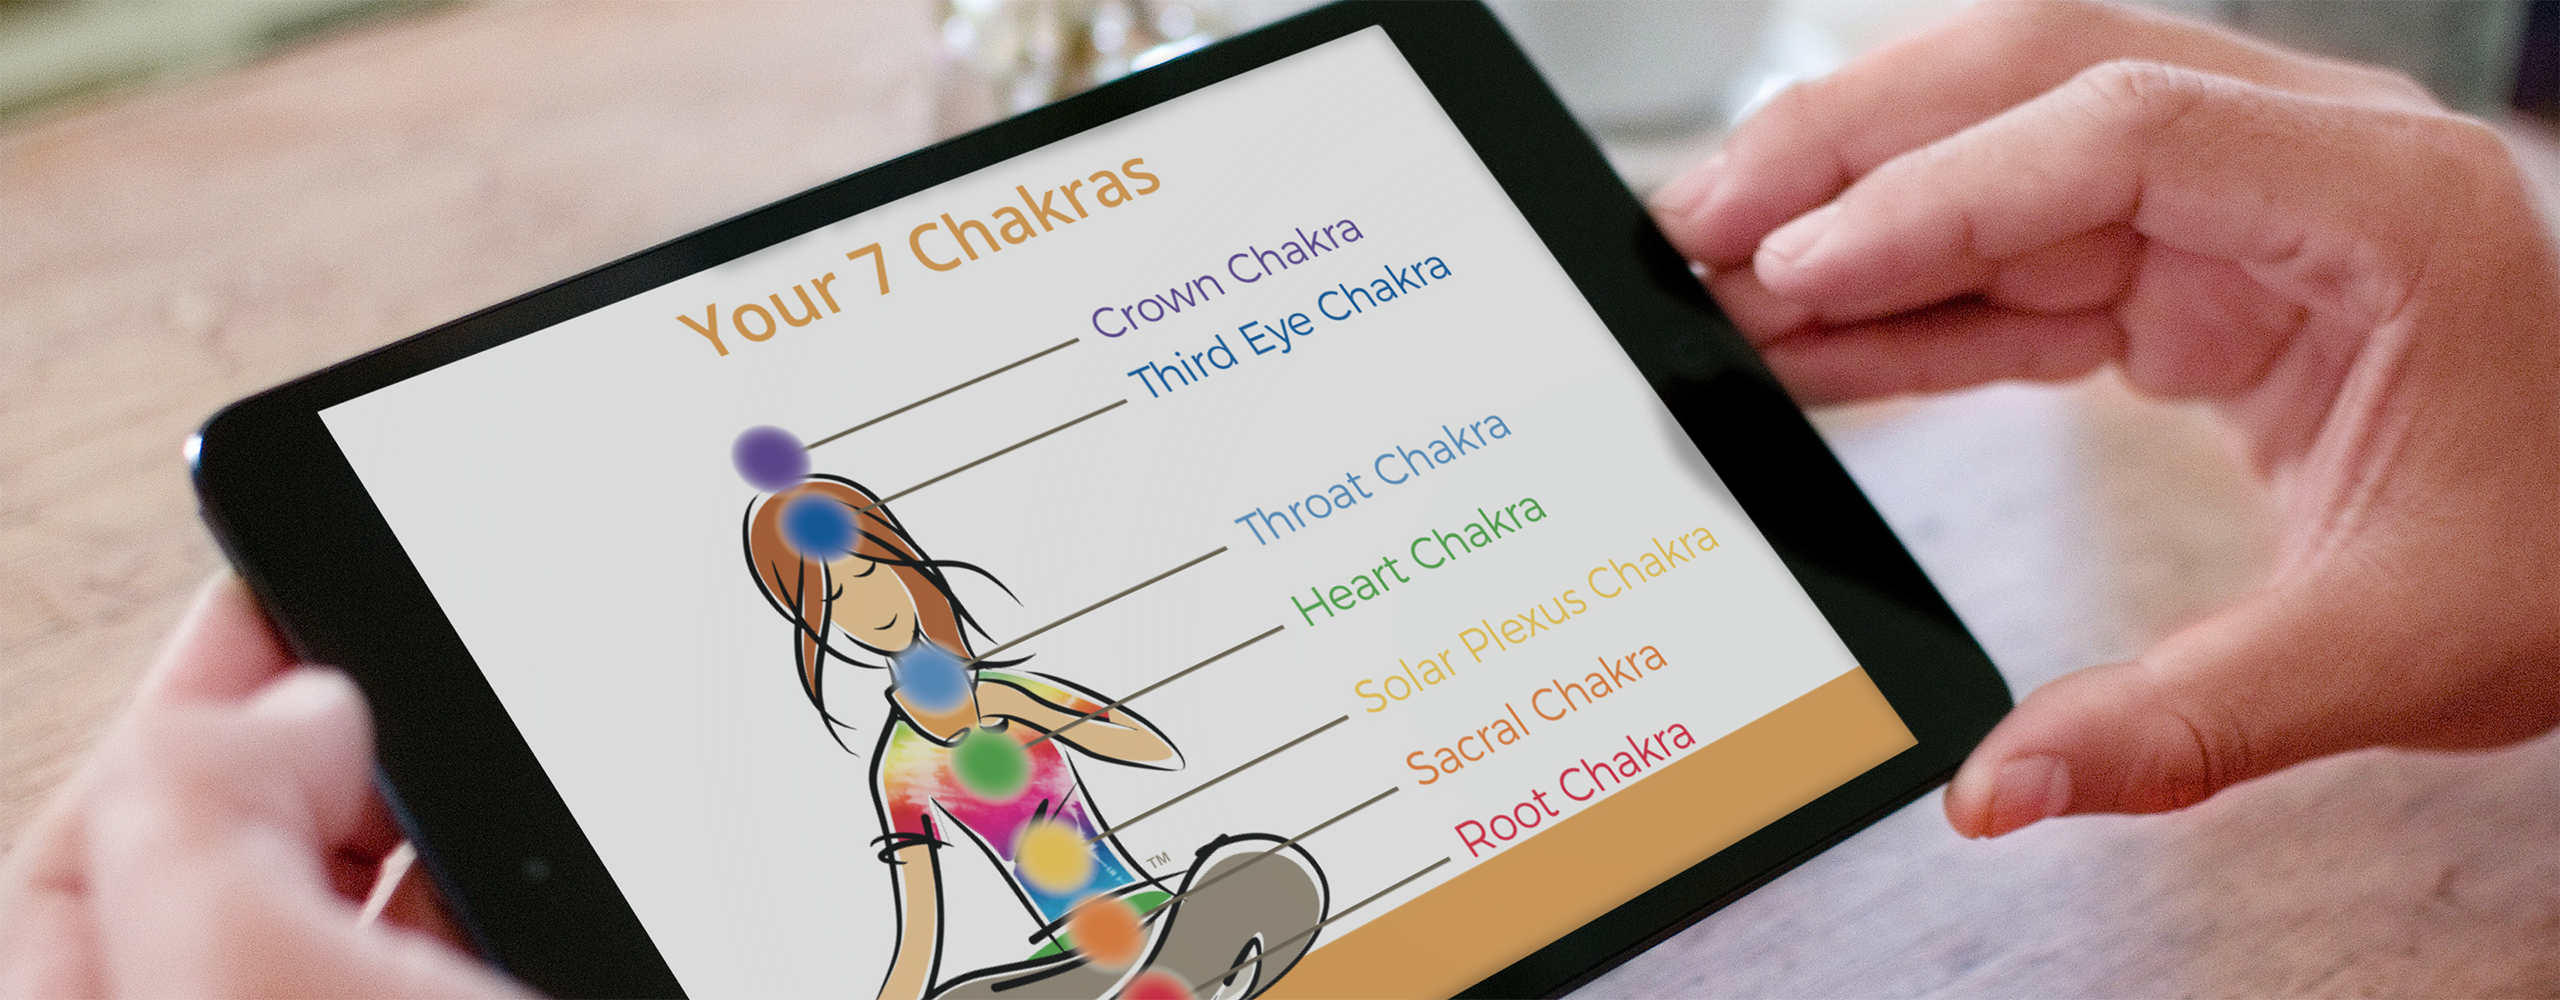 your 7 chakras the strengths within you